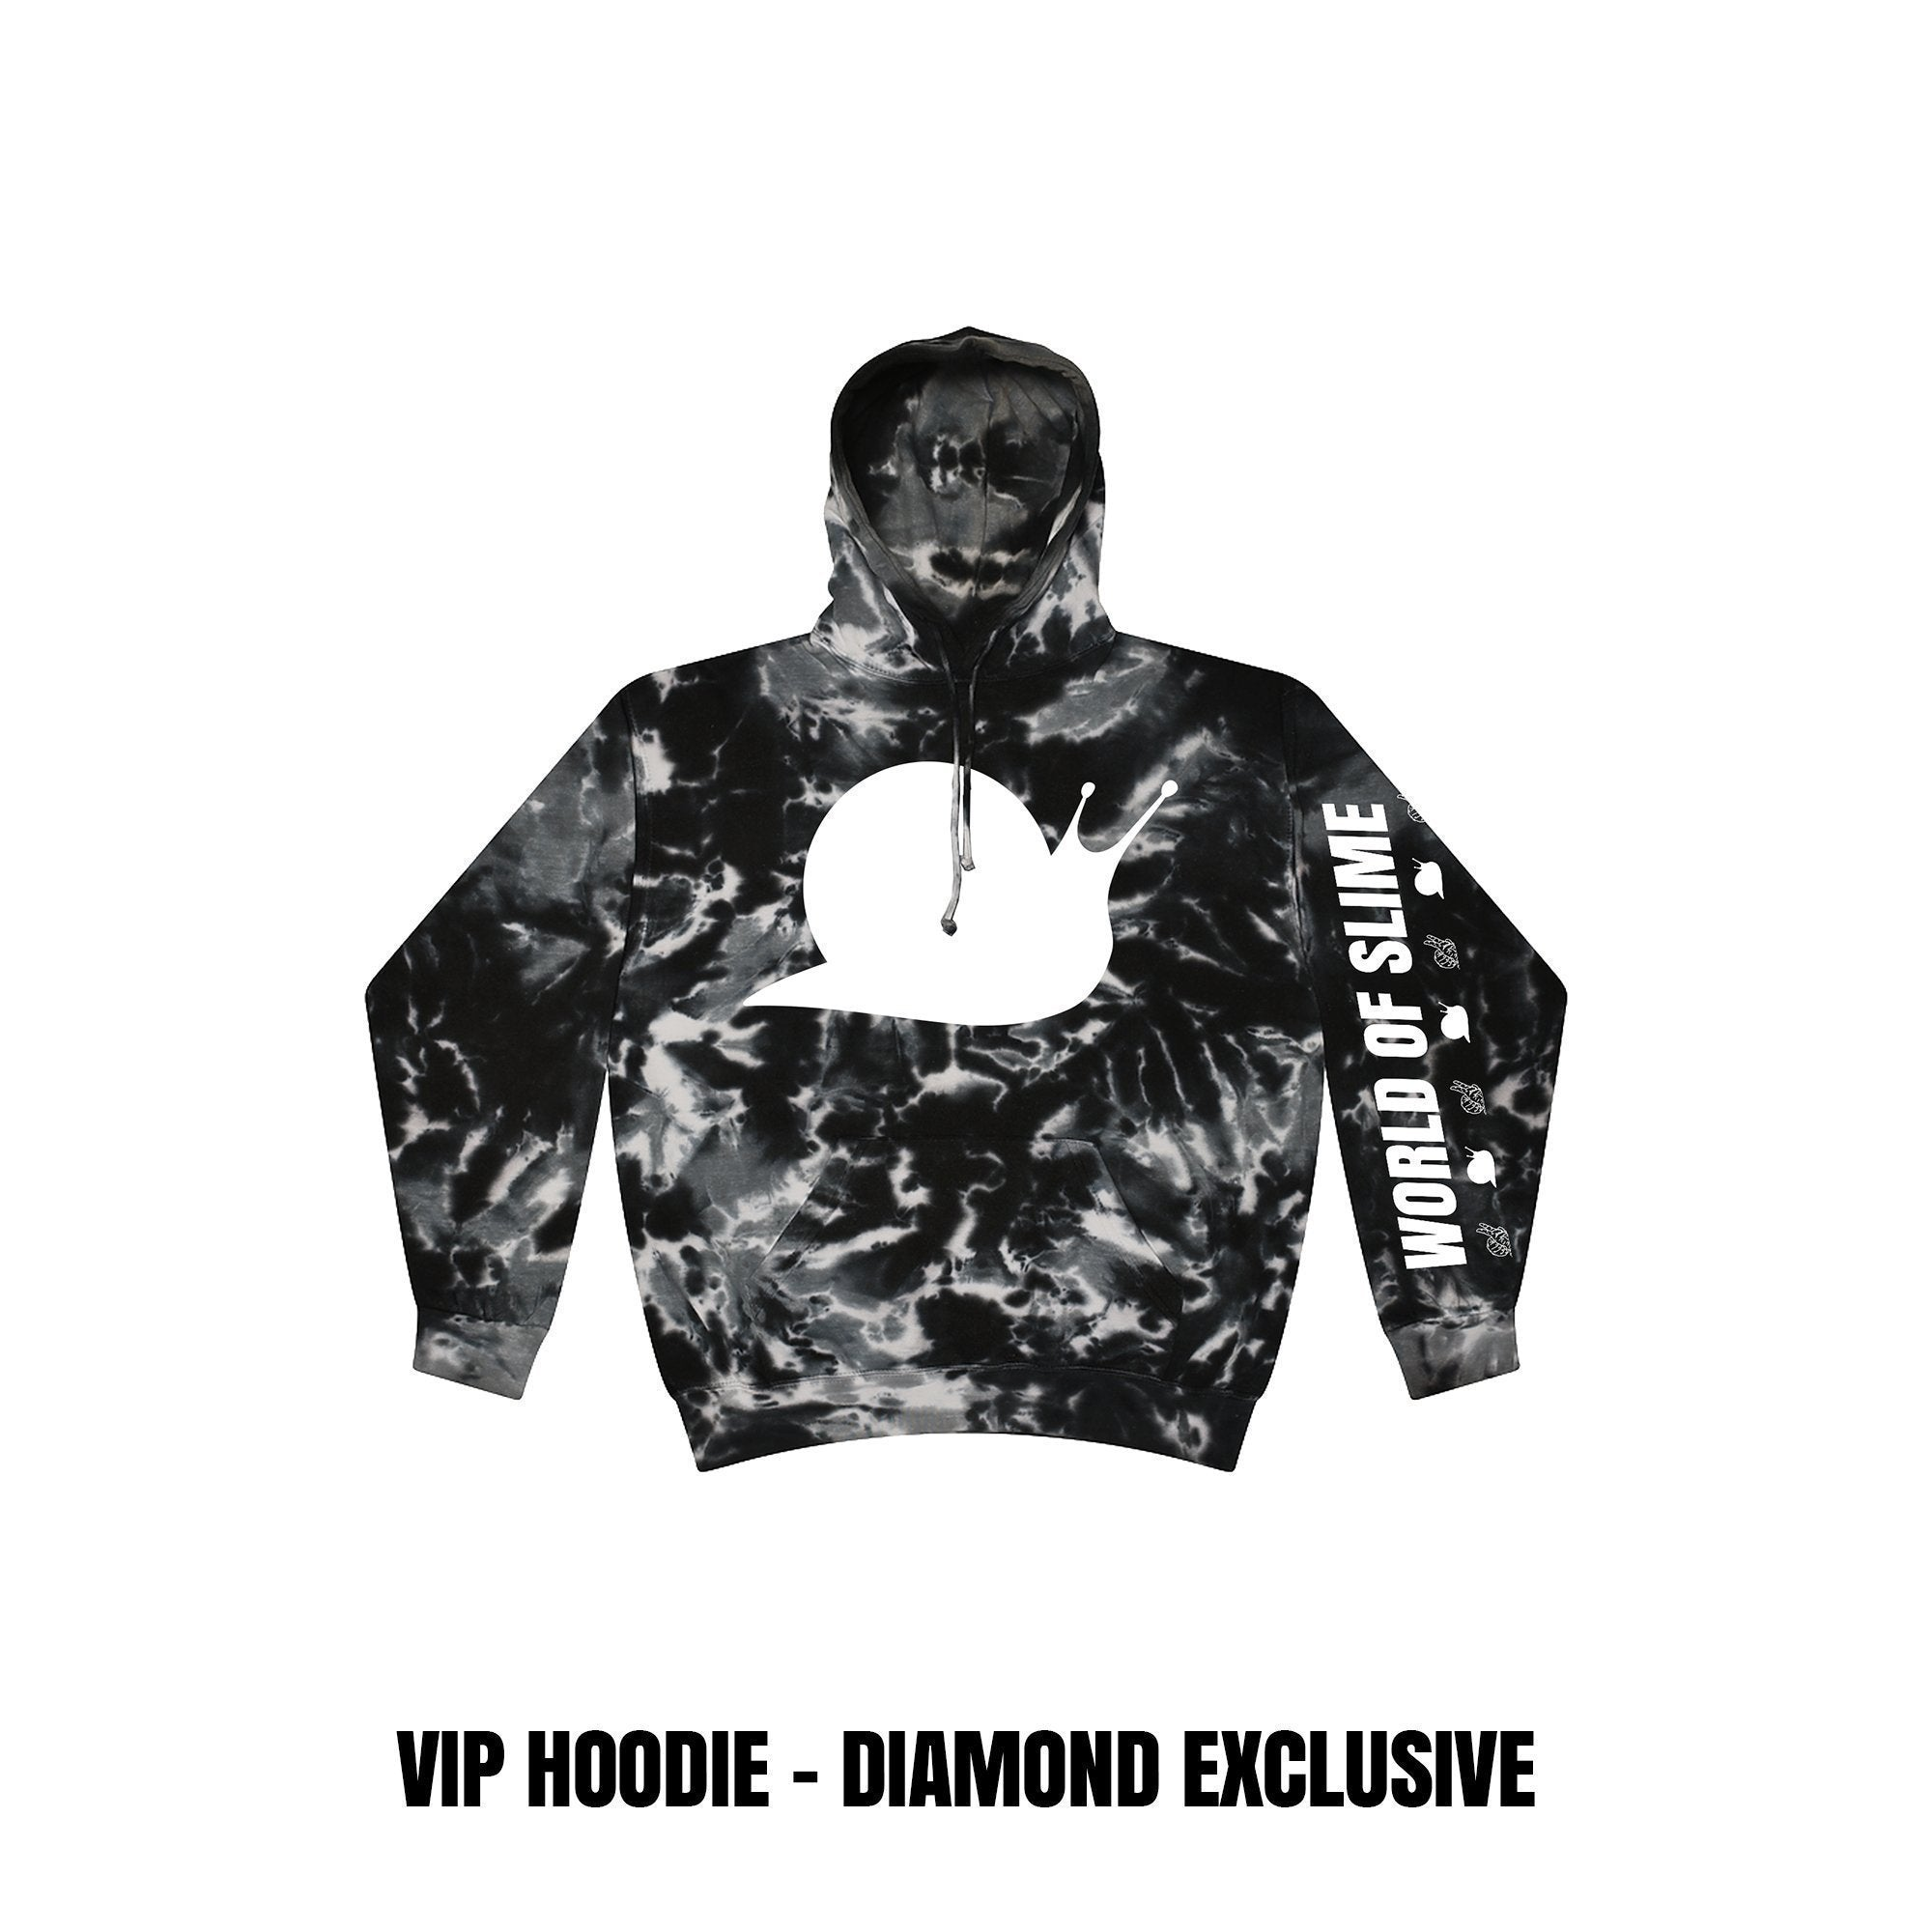 World Of Slime Tour - Indianapolis, IN - 12/04 - VIP UPGRADE